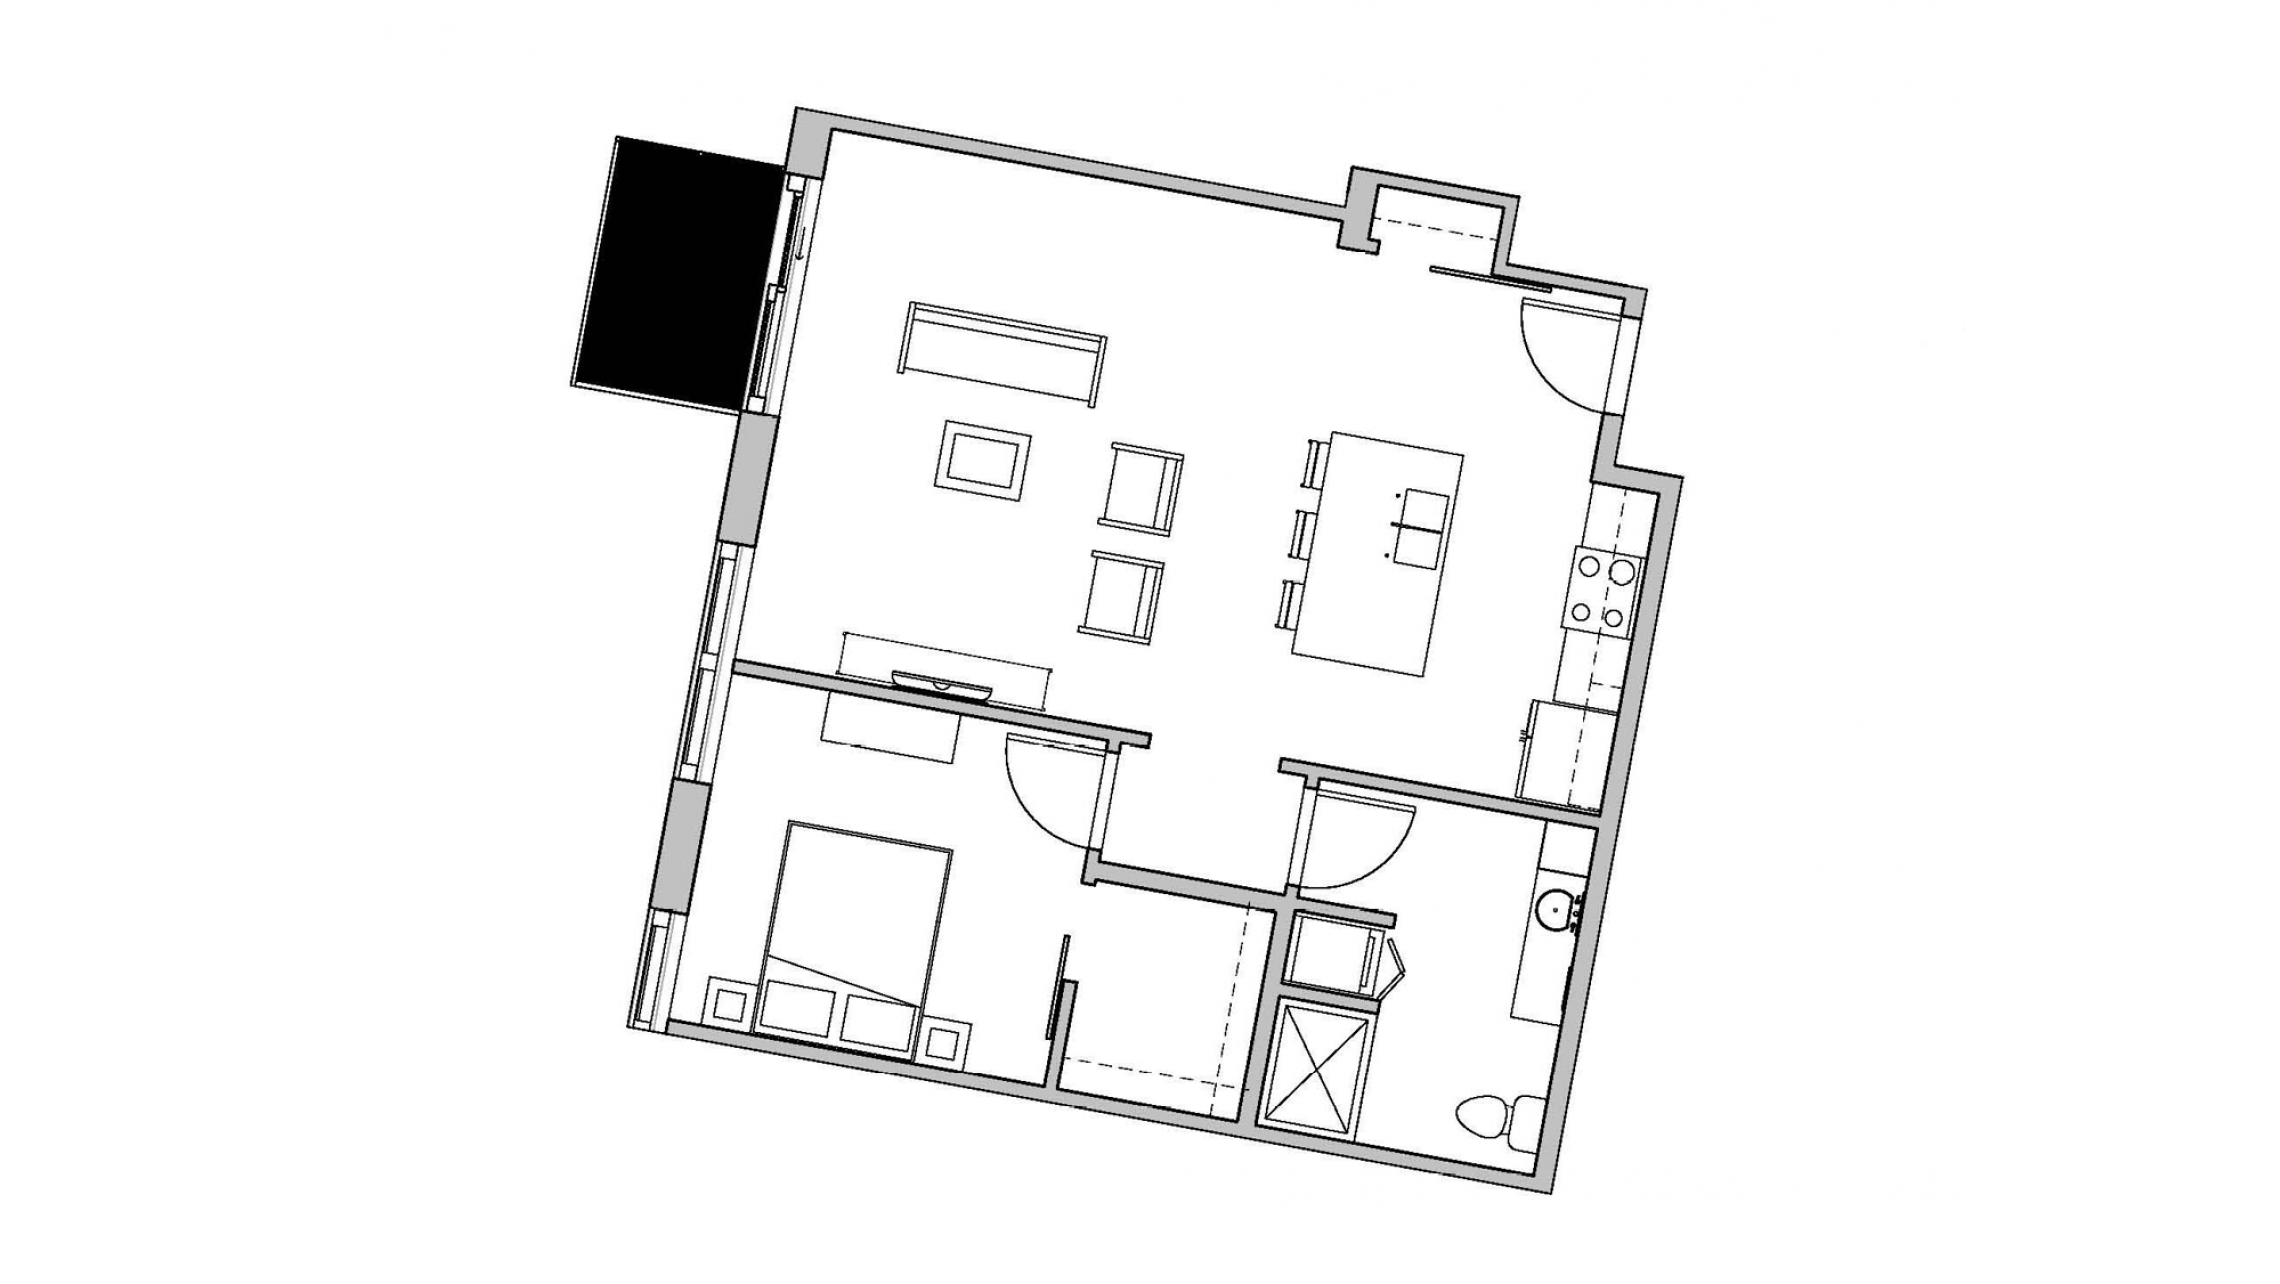 ULI Seven27 226 - One Bedroom, One Bathroom